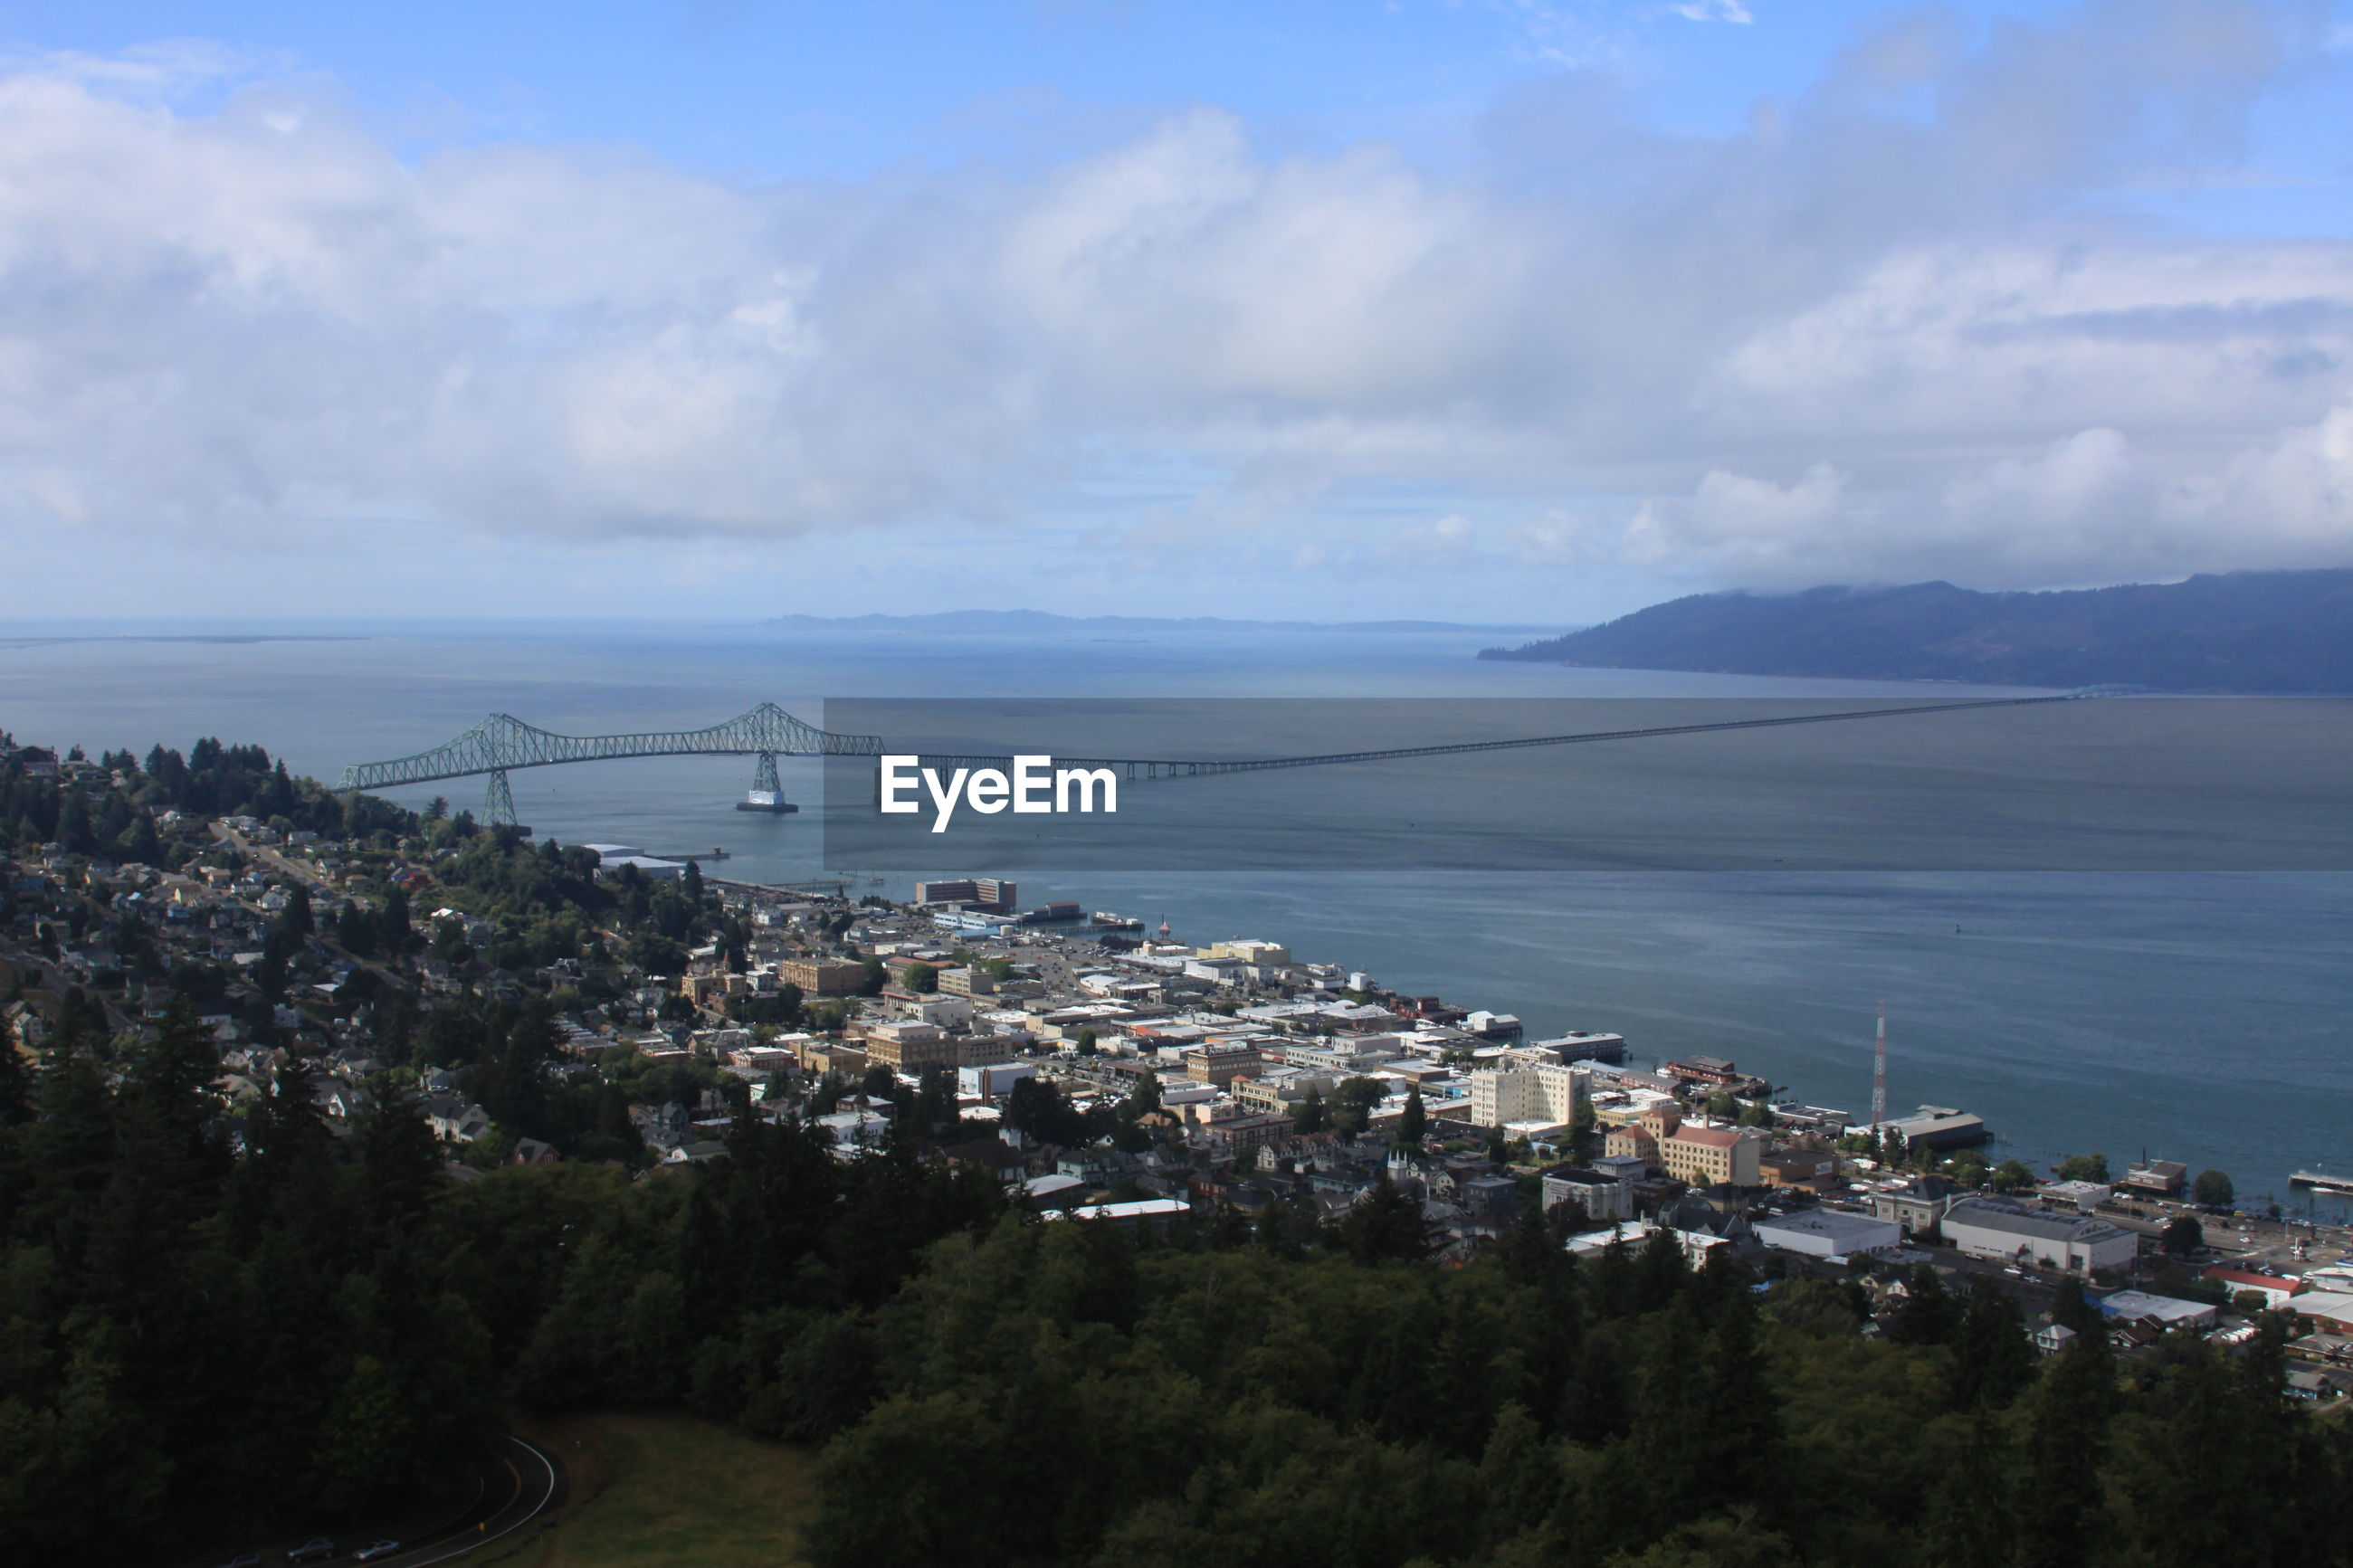 SCENIC VIEW OF SEA BY TOWN